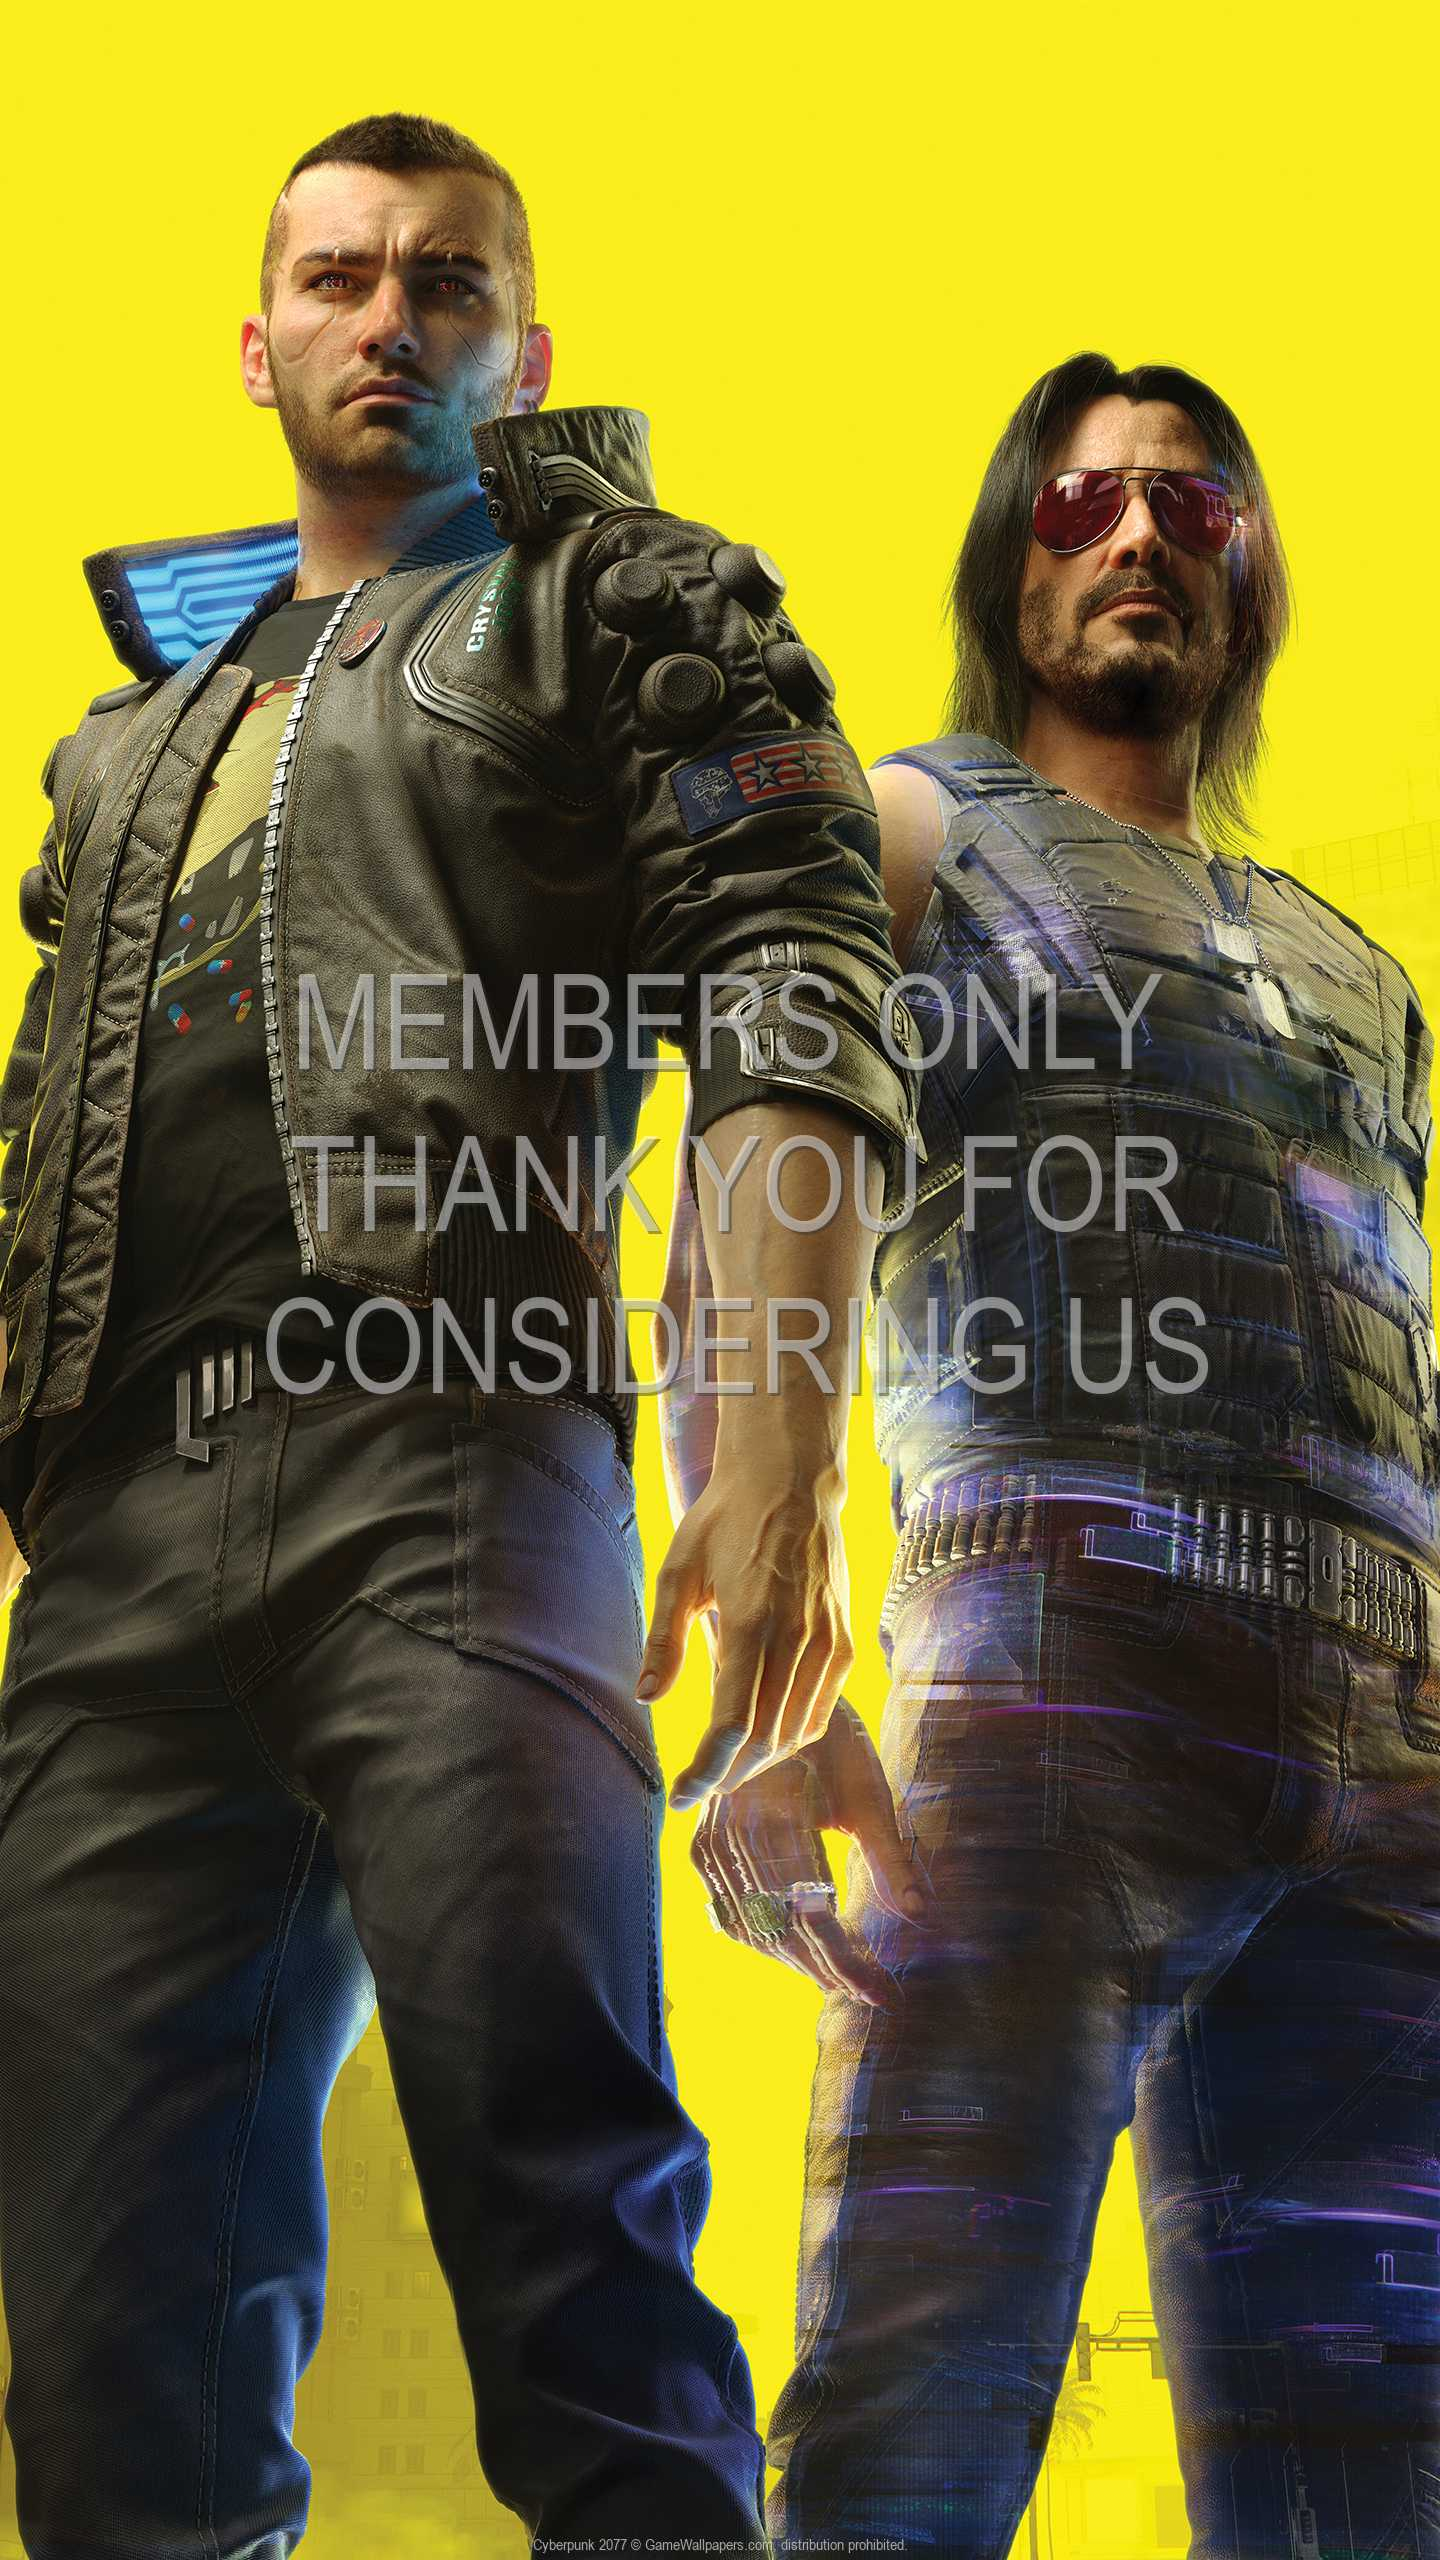 Cyberpunk 2077 1440p Vertical Mobile wallpaper or background 46